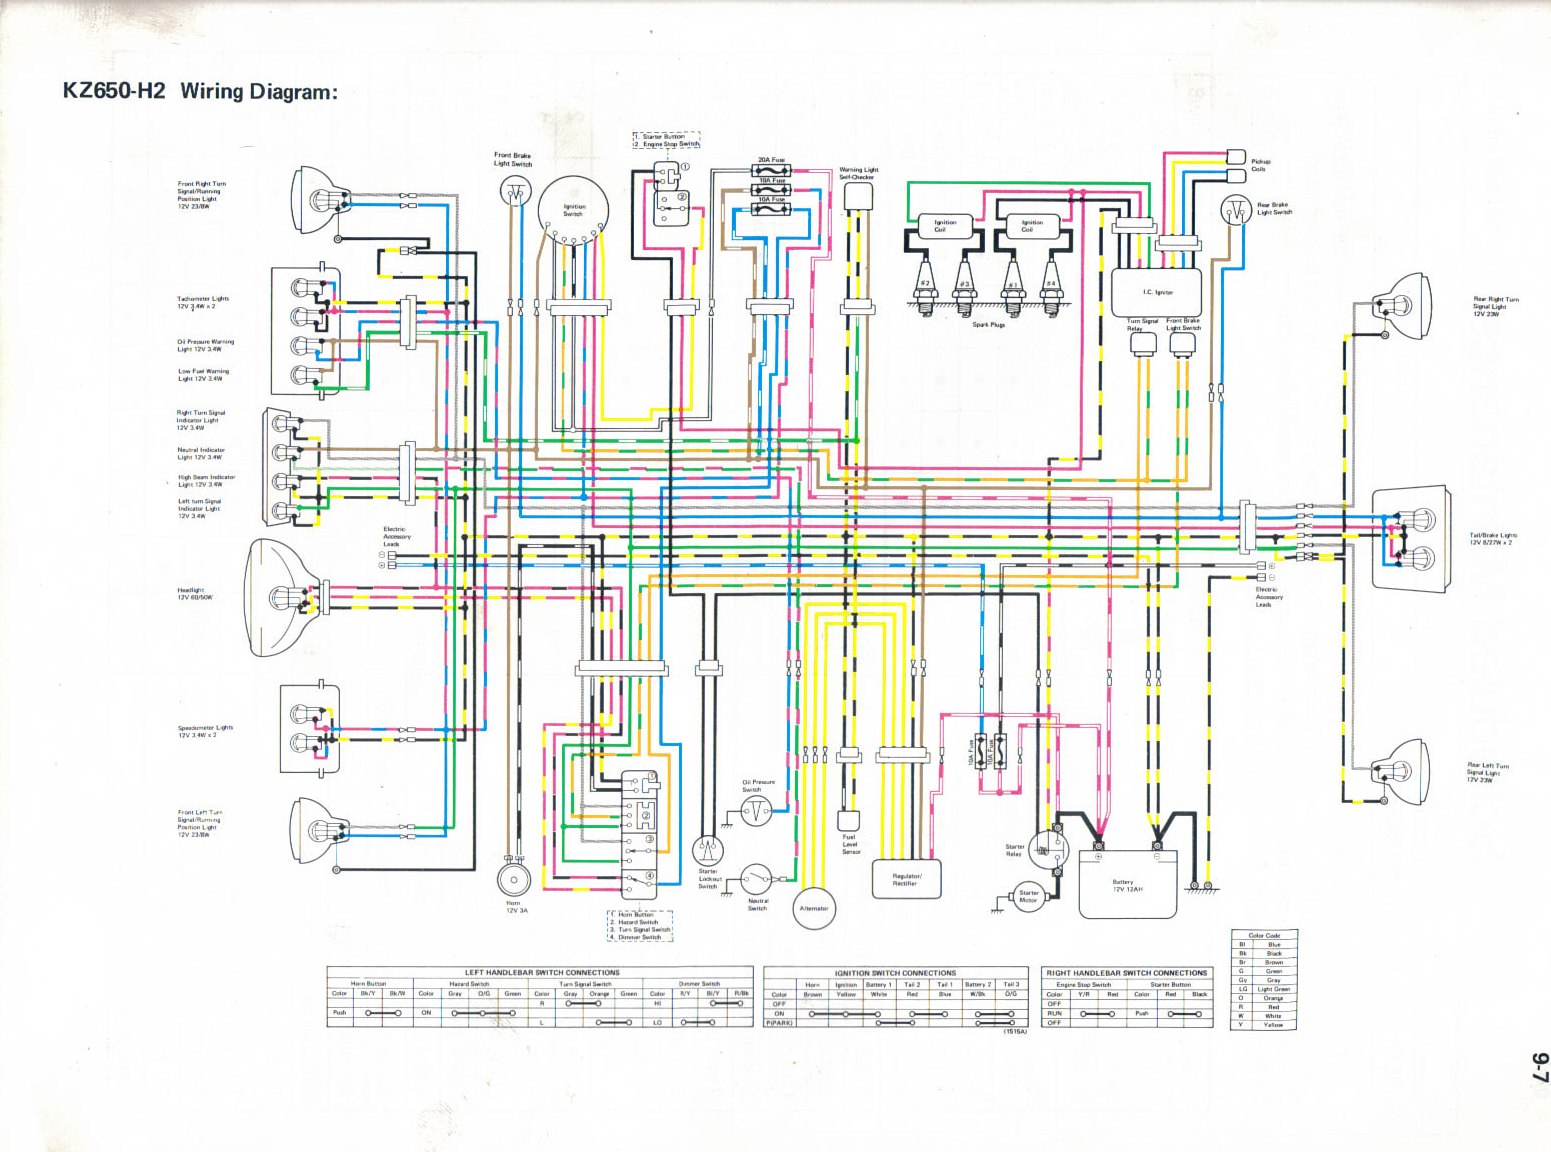 KZ650 H2 kawasaki h2 wiring diagram kawasaki wiring diagrams instruction ex500 wiring diagram at alyssarenee.co